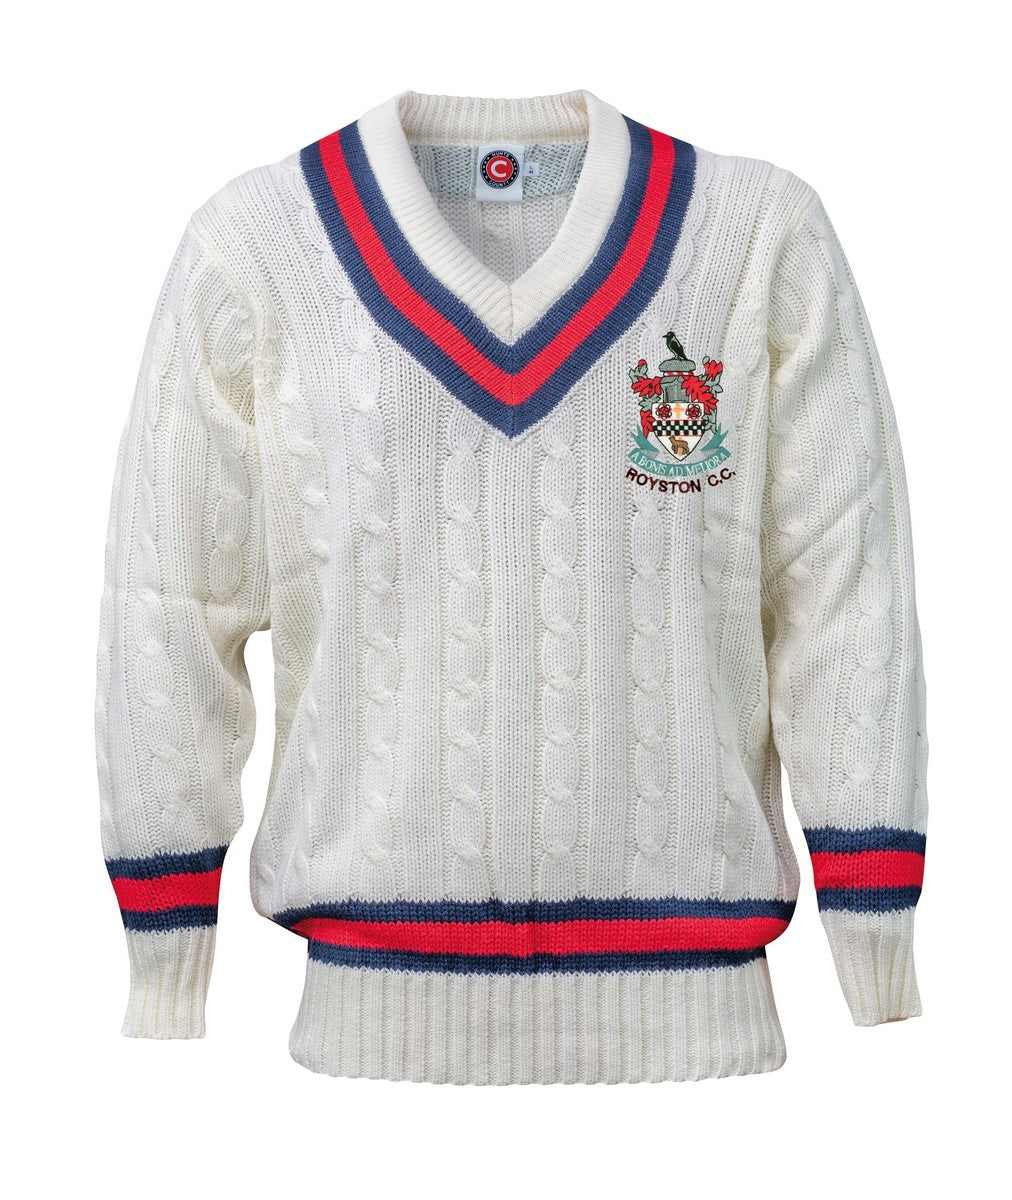 Royston CC Sweater Junior - The Incredible Cricket Company